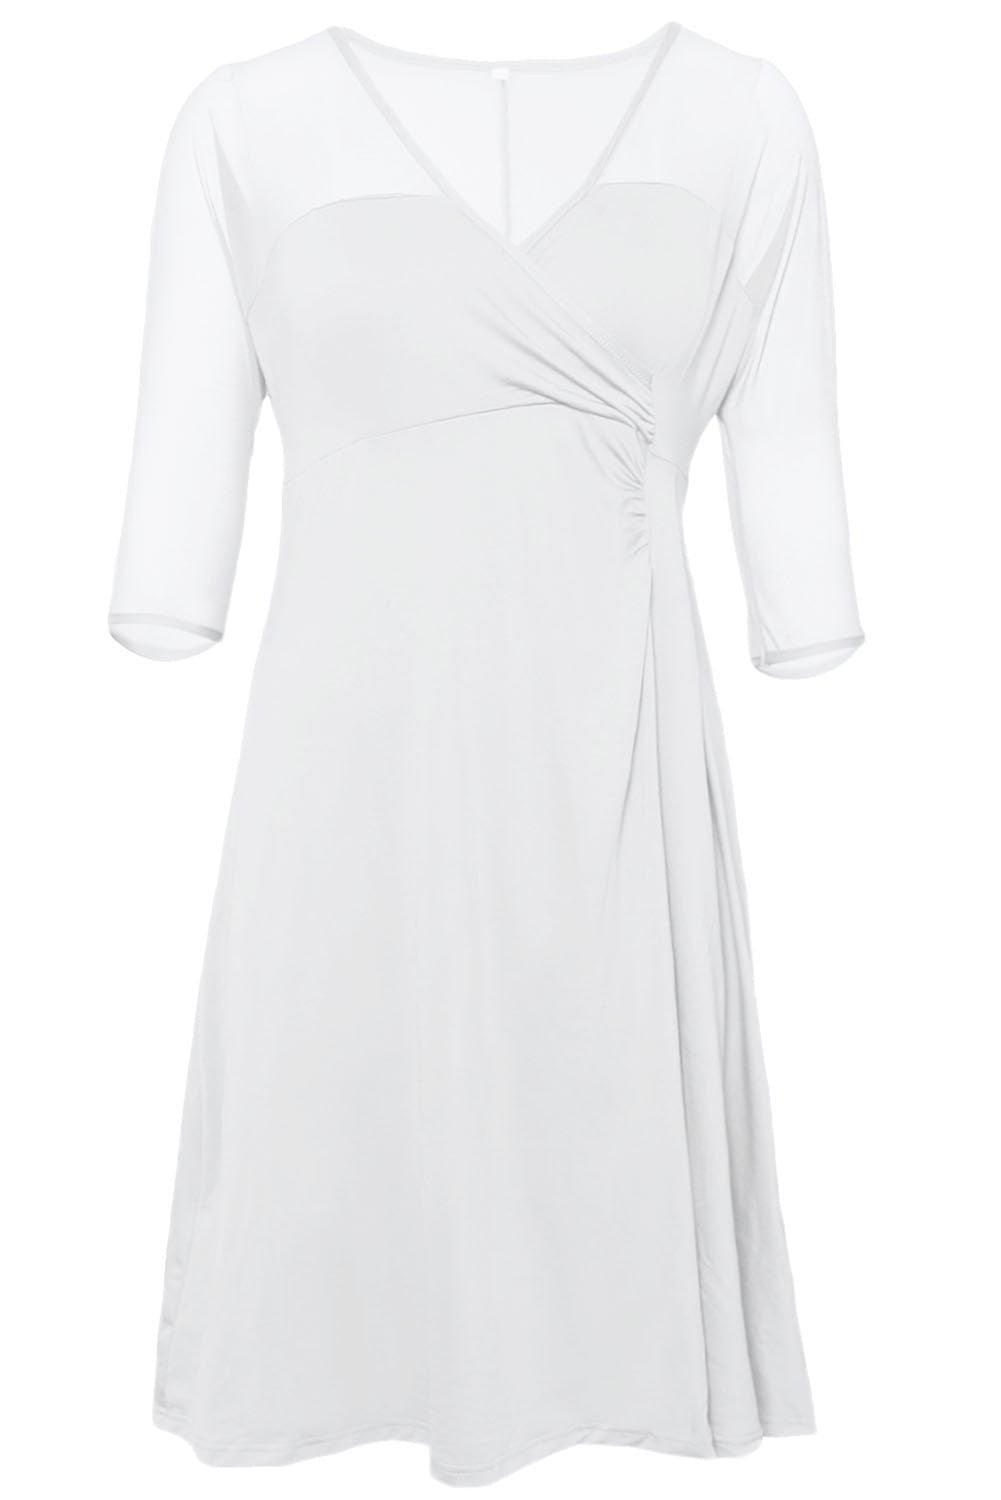 Sugar and Spice Classic White Plus Dress - Budget Babe Couture